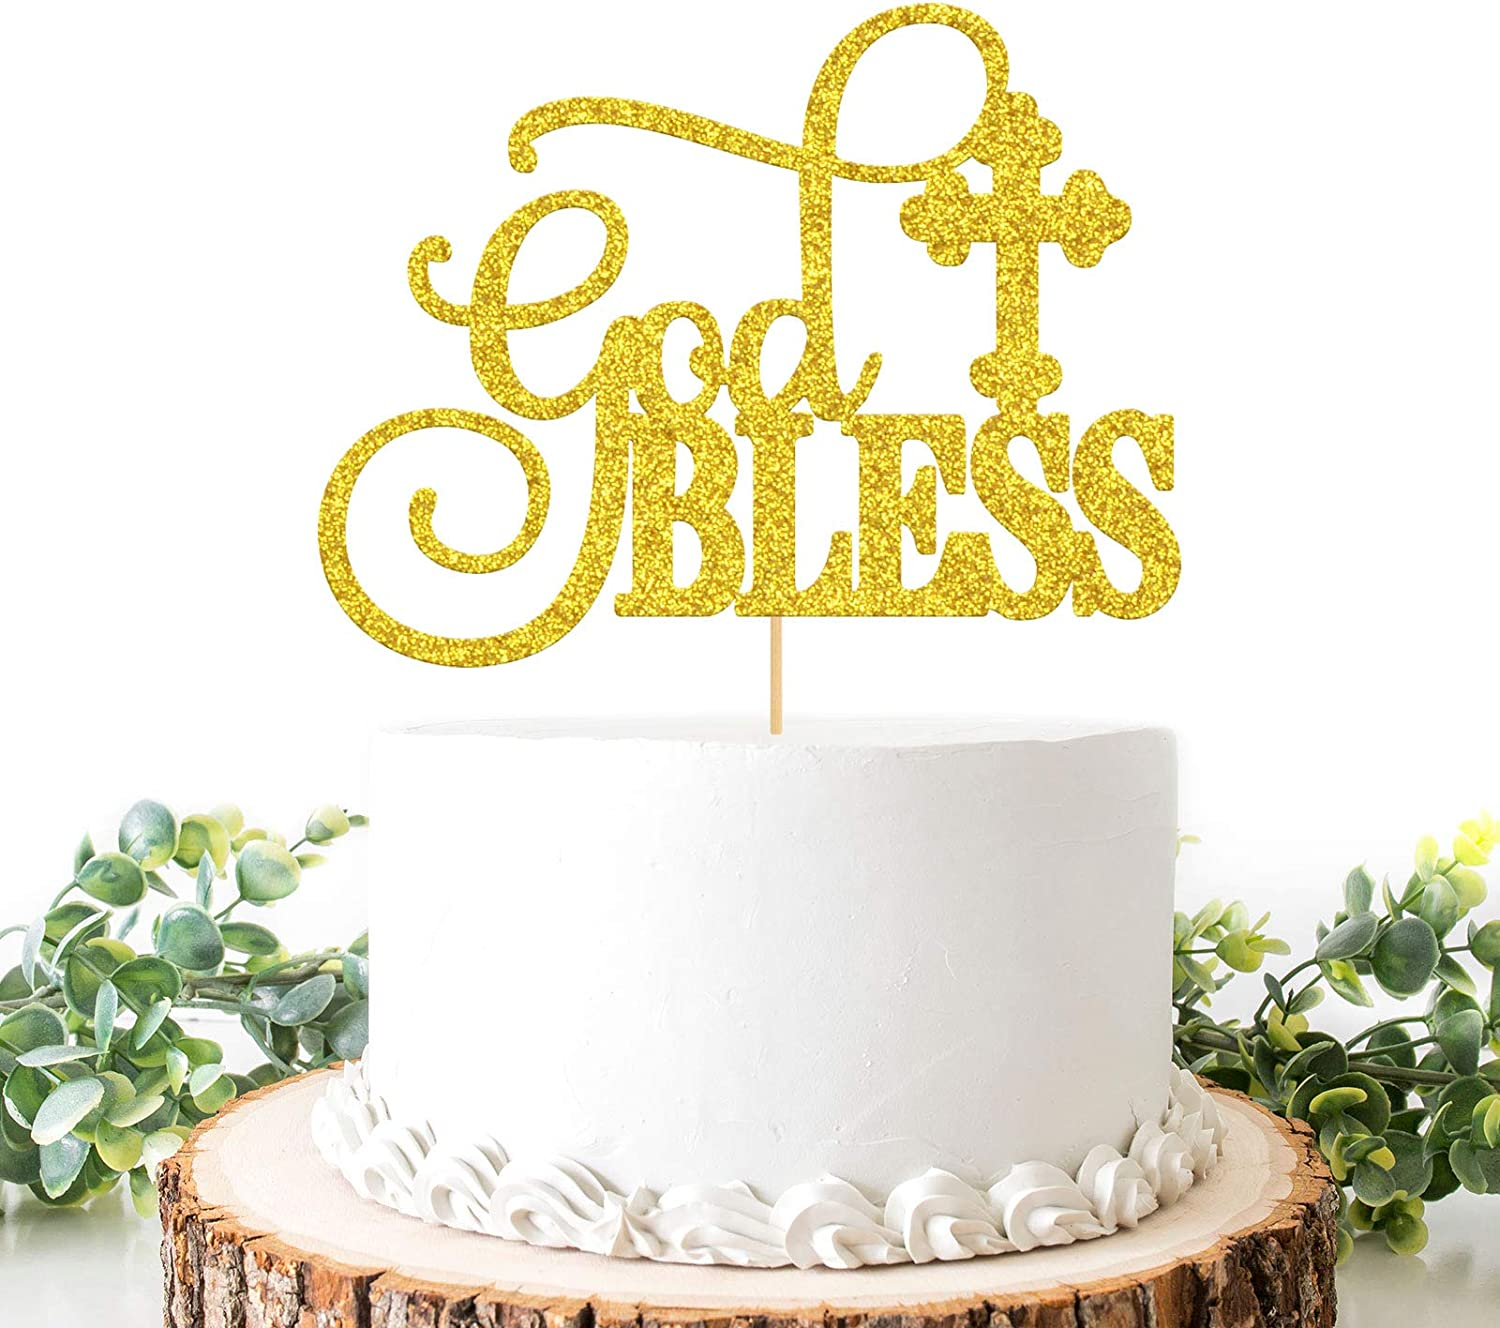 Helewilk God Bless Cake Topper, Gold Glitter Christening First Communion Cake Decor, Boy or Girl Baby Shower / Wedding / Engagement Party Supplies